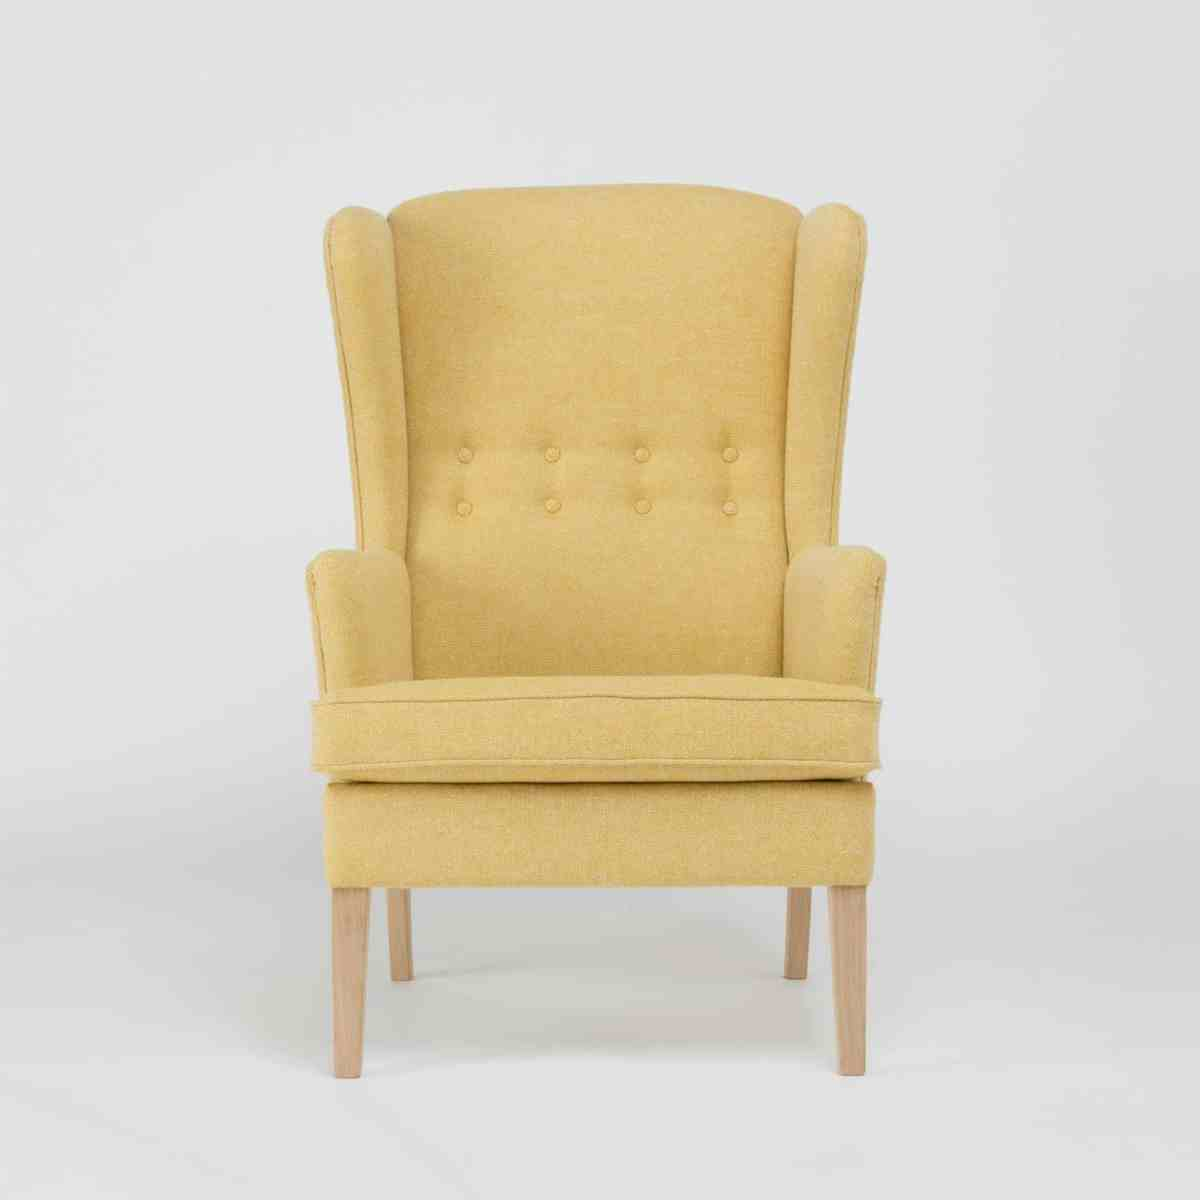 soren-lund-winged-armchair-125-another-country-001